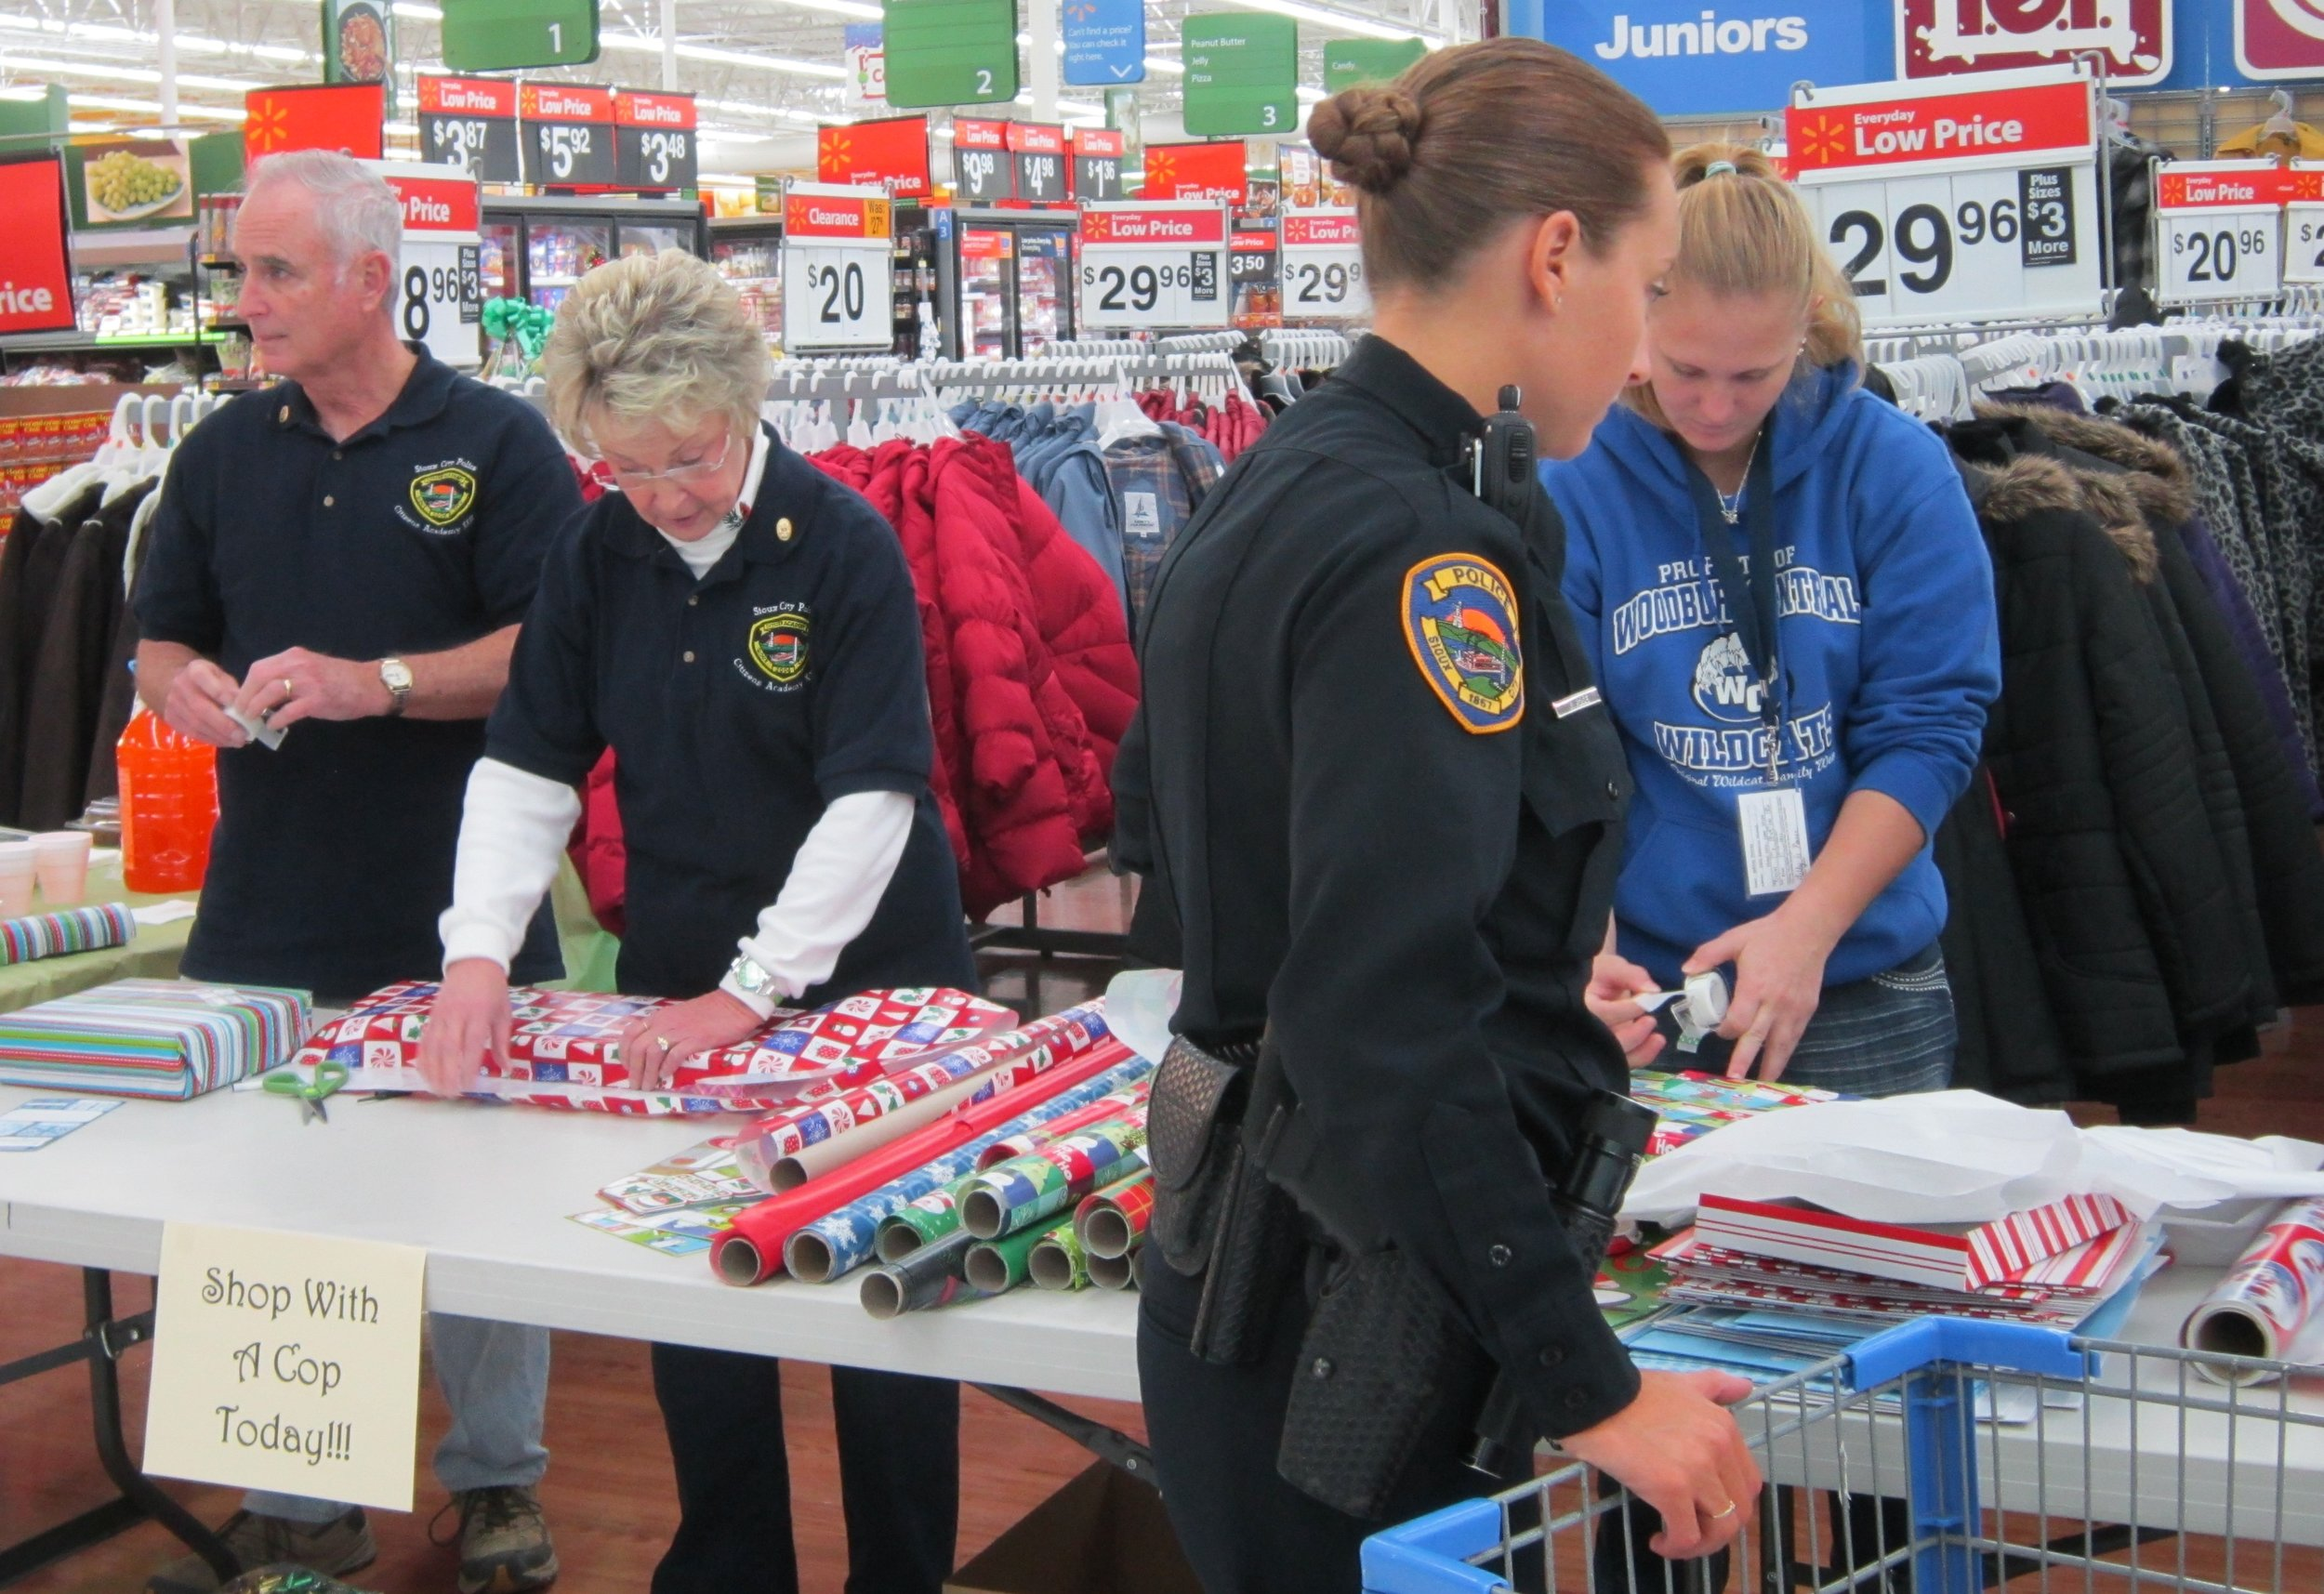 Volunteers, Aleck and Marlene, helping with Shop with Cops event